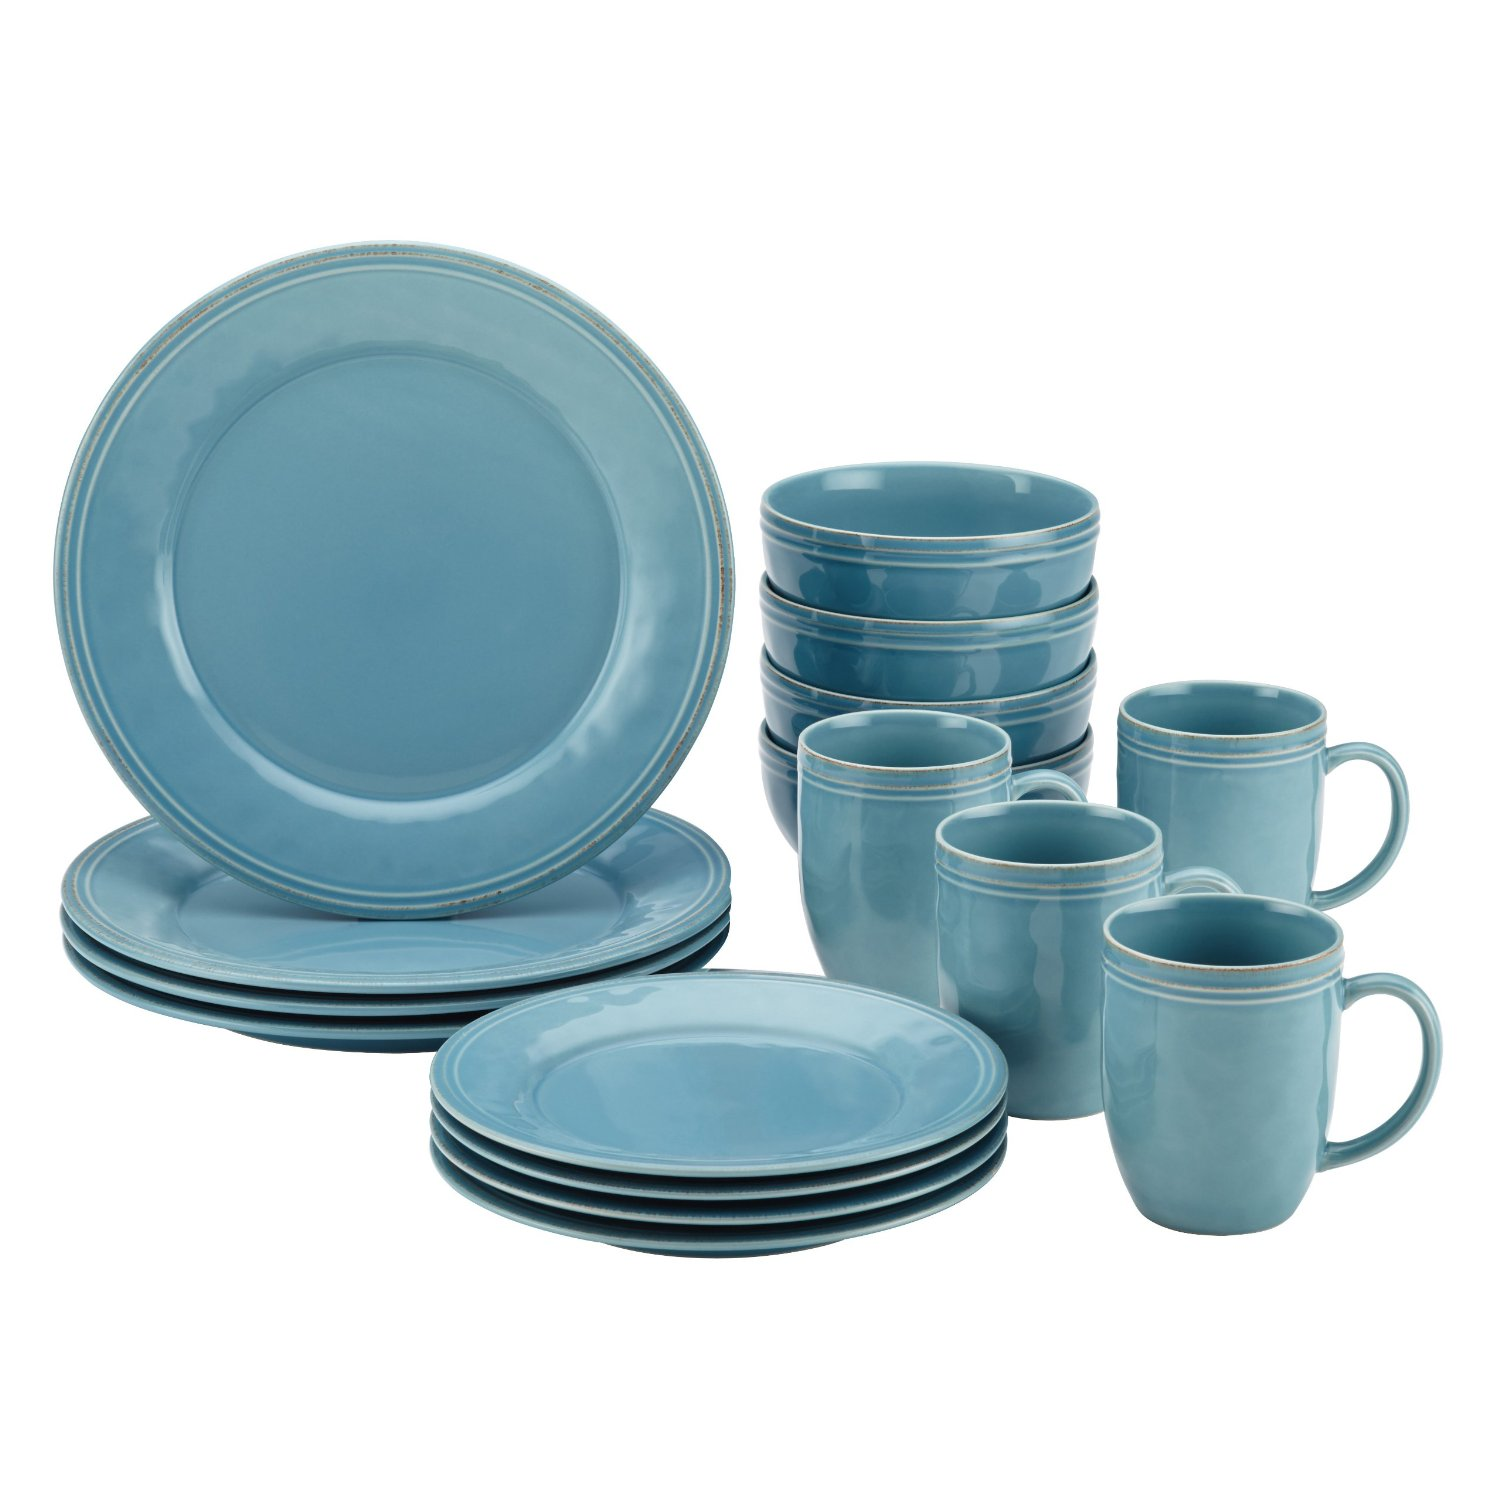 Stoneware Dinnerware Sets | Target Plates and Bowls | Home Trends Dinnerware